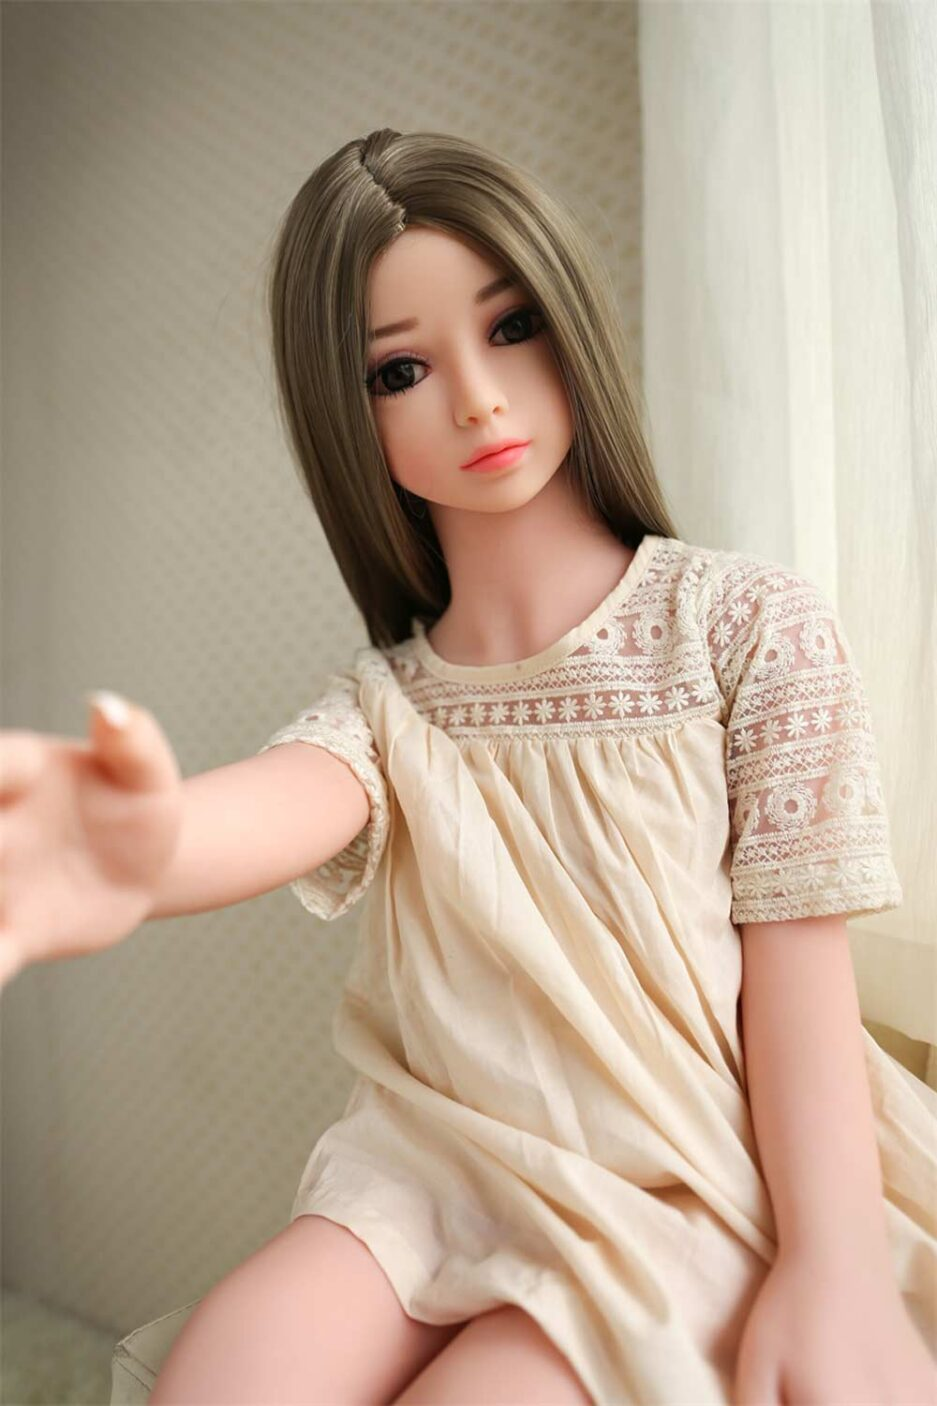 Mini sex doll with one hand out